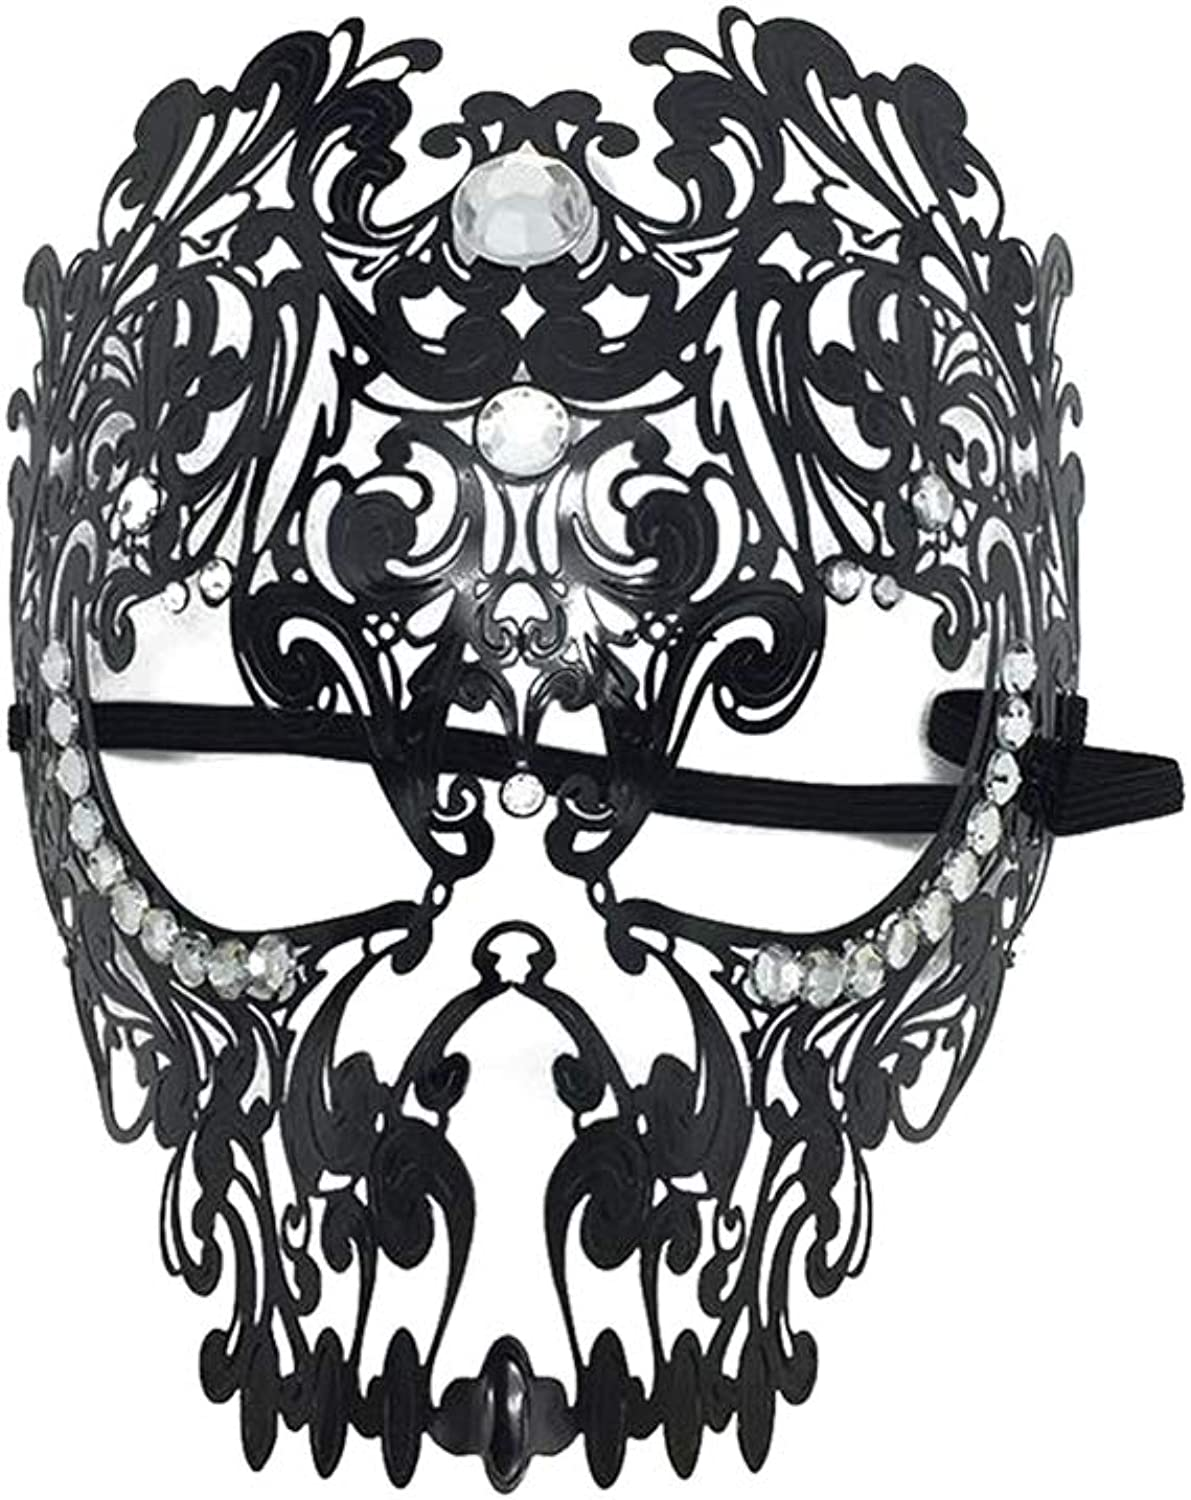 Skull Iron Mask,Full Face Female Mask Masquerade Princess Mask Venice Wrought Iron Mask Cosplay Hollow Mask Black